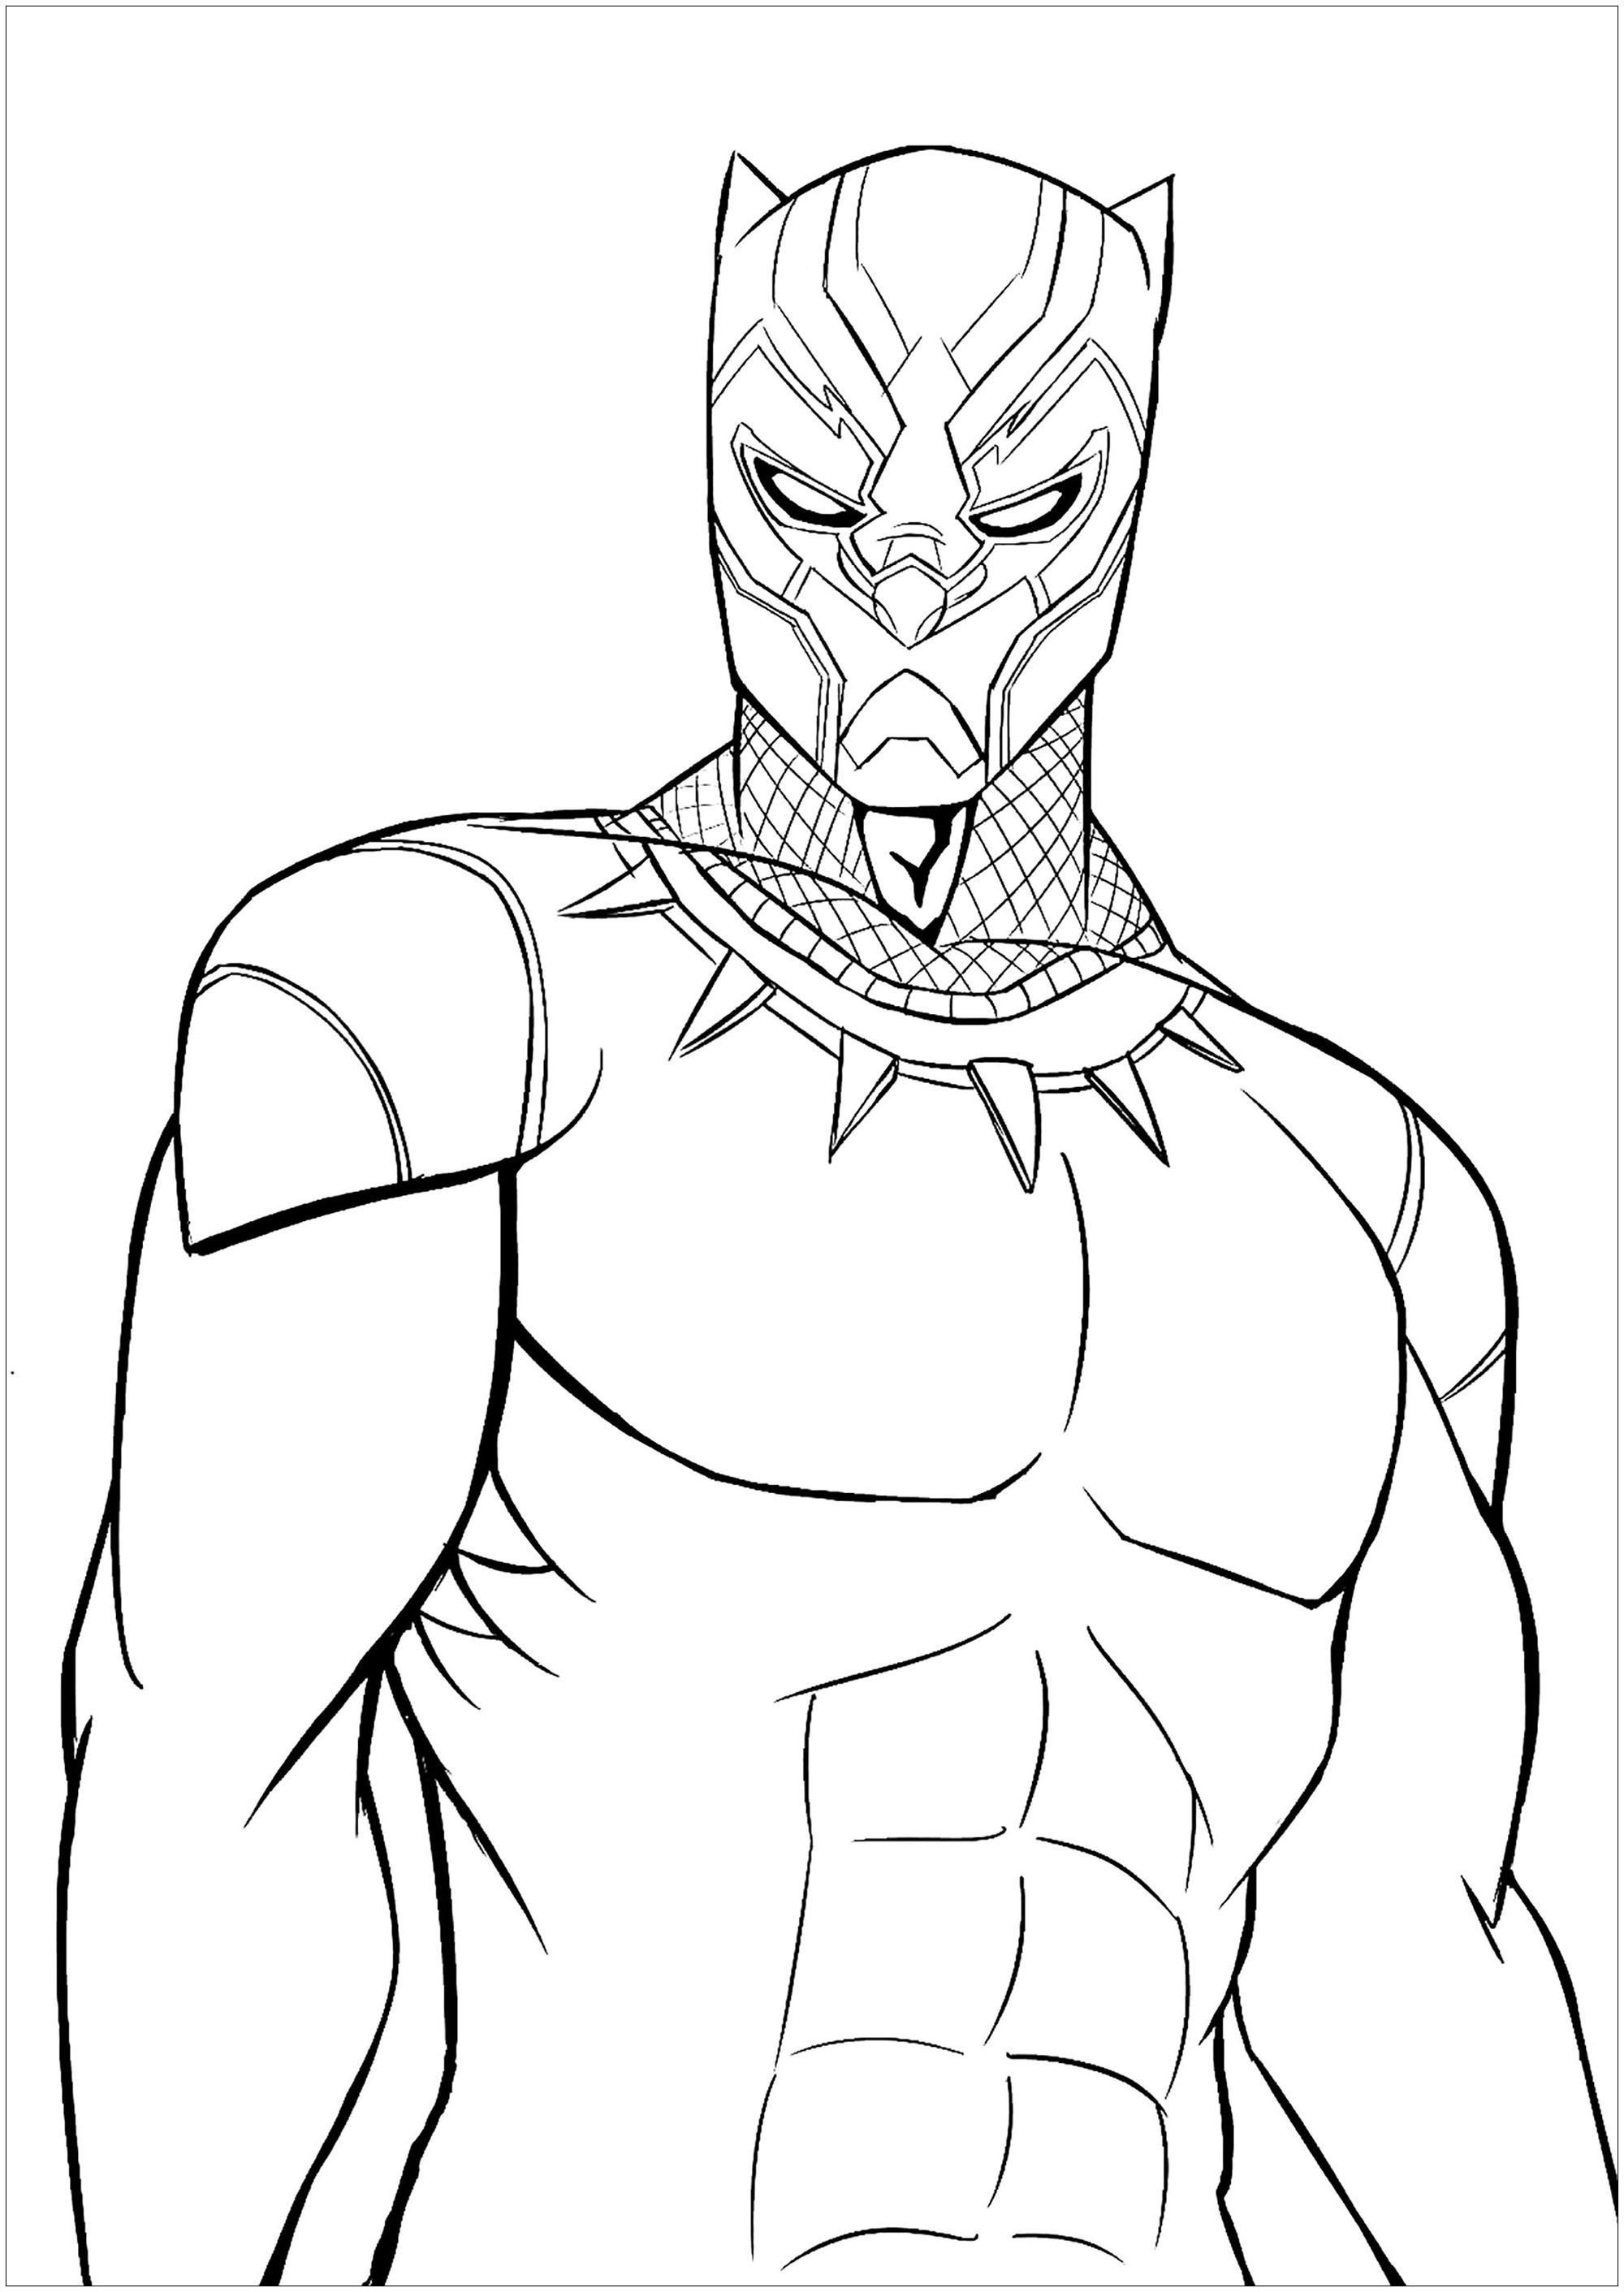 Black Panther Coloring Page To Print And Color For Free Avengers Coloring Pages Superhero Coloring Superhero Coloring Pages